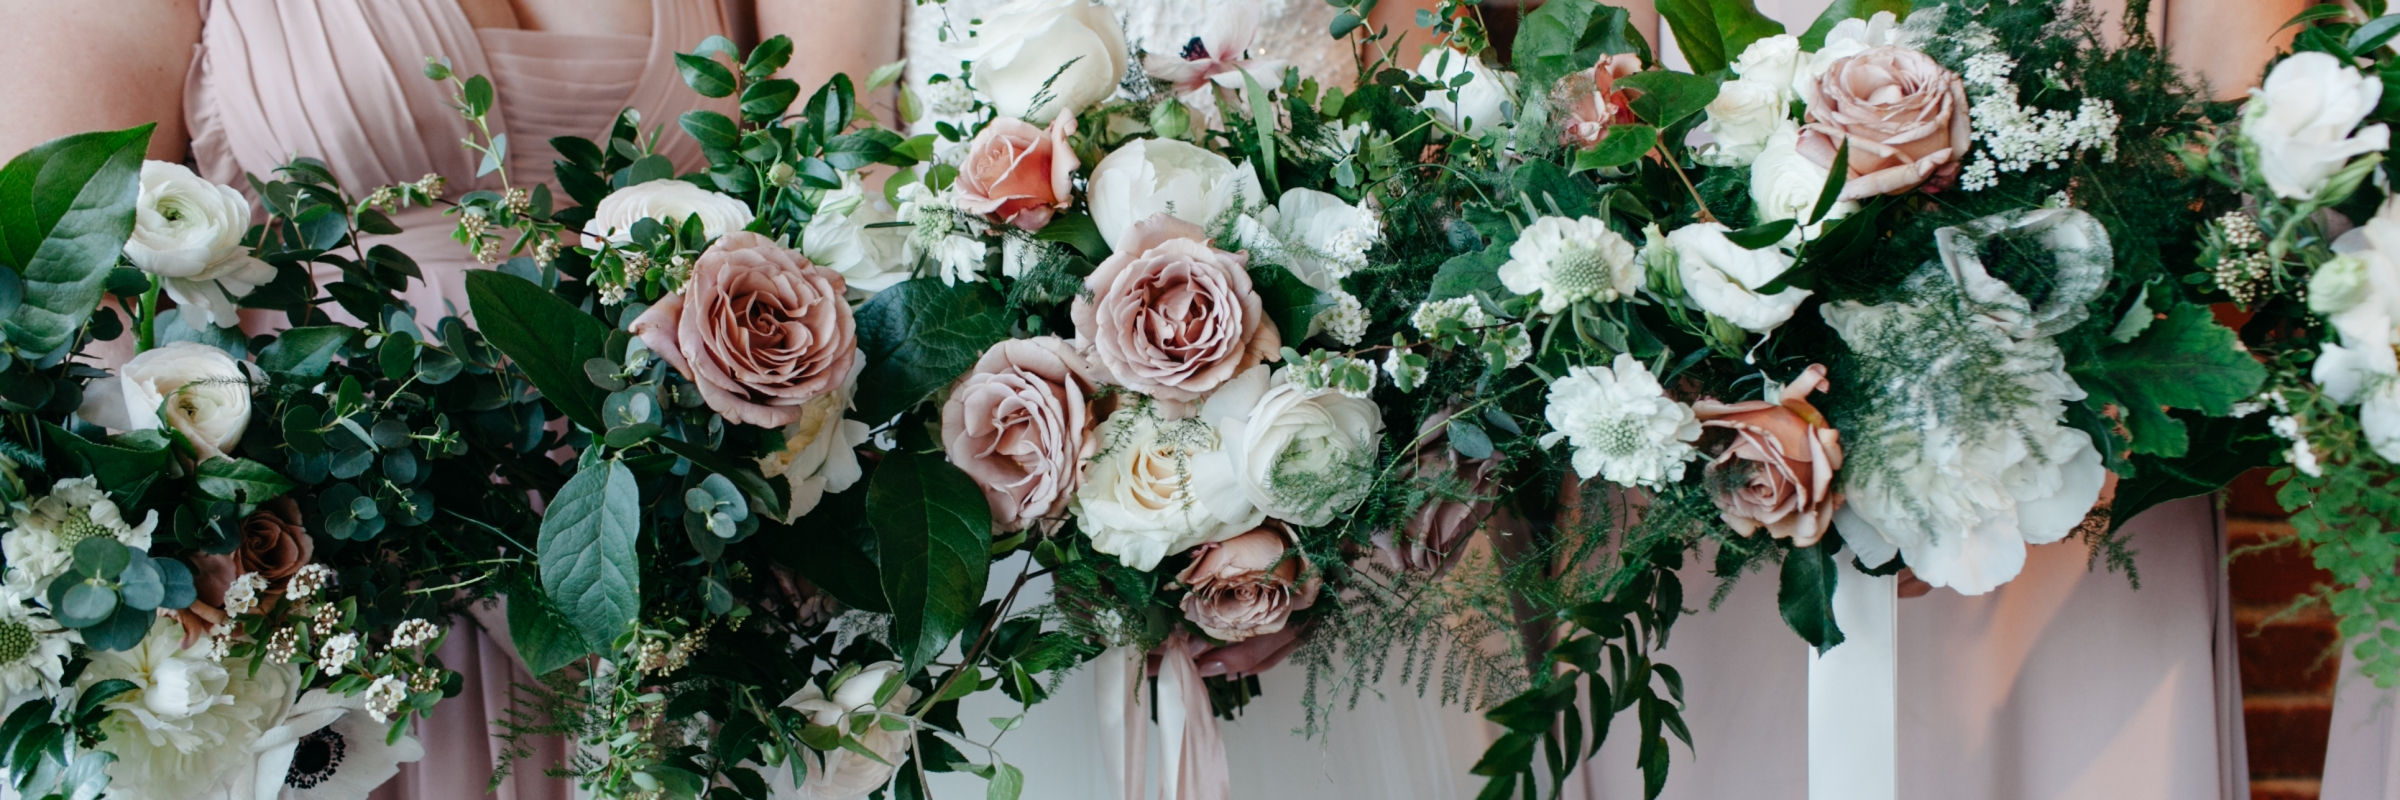 Blush and white bridal bouquets | Photo by Kate Price Photography | Wedding Planning by Perfectly Posh Events, Portland and Seattle wedding planners